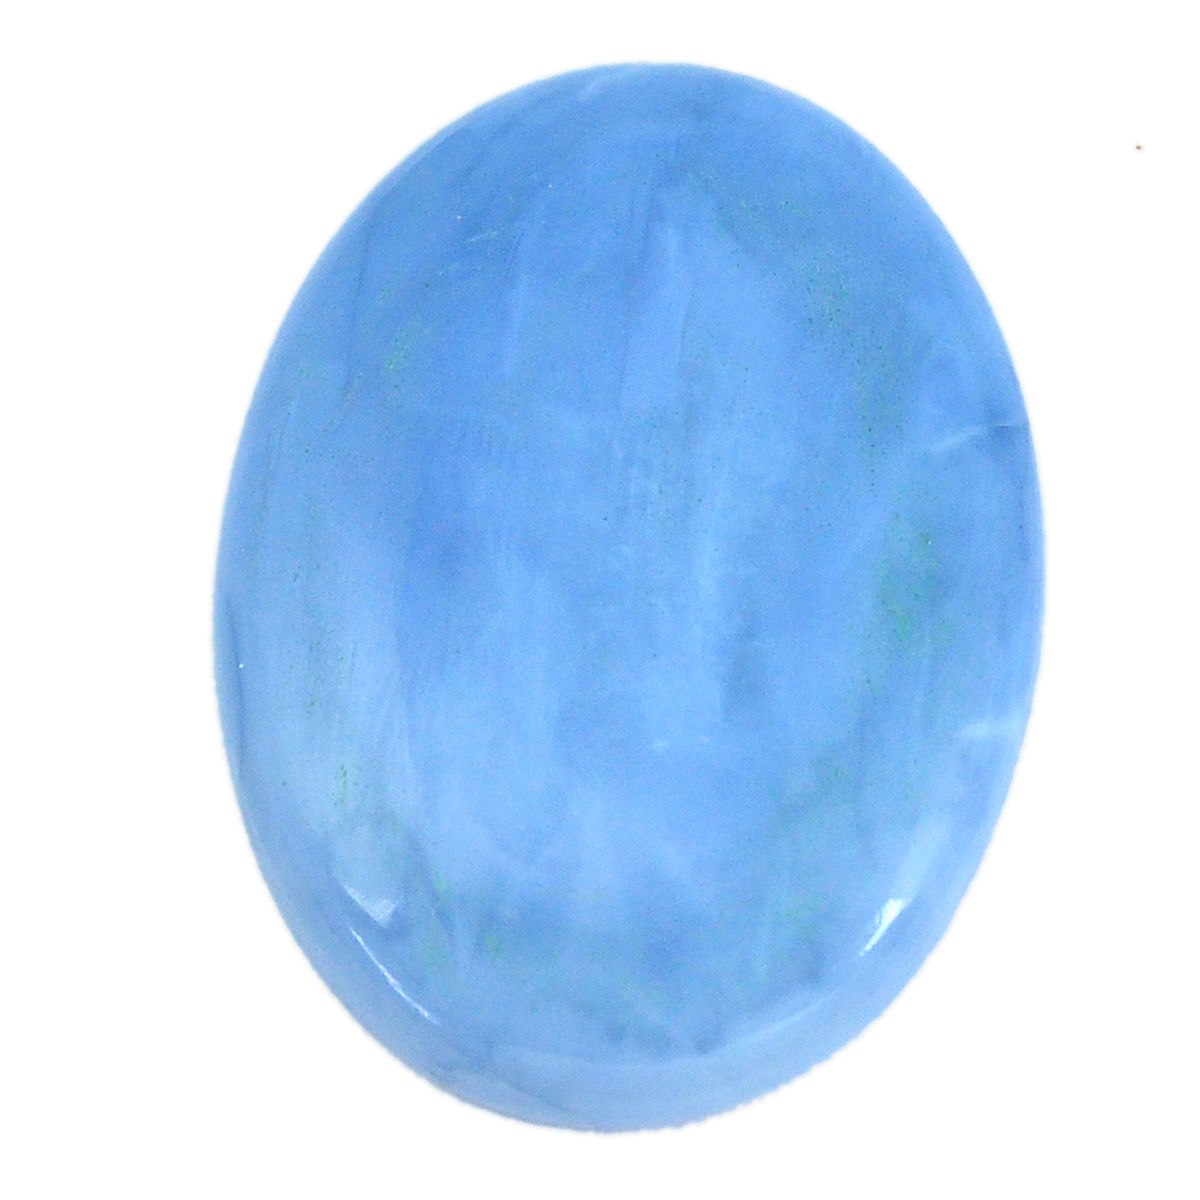 Natural Owyhee Blue Opal Stone 120ct Blue Opal Cabochon Oval Shape Natural Blue opal Gemstone For Jewelry Making Blue Opal Loose Stone G533